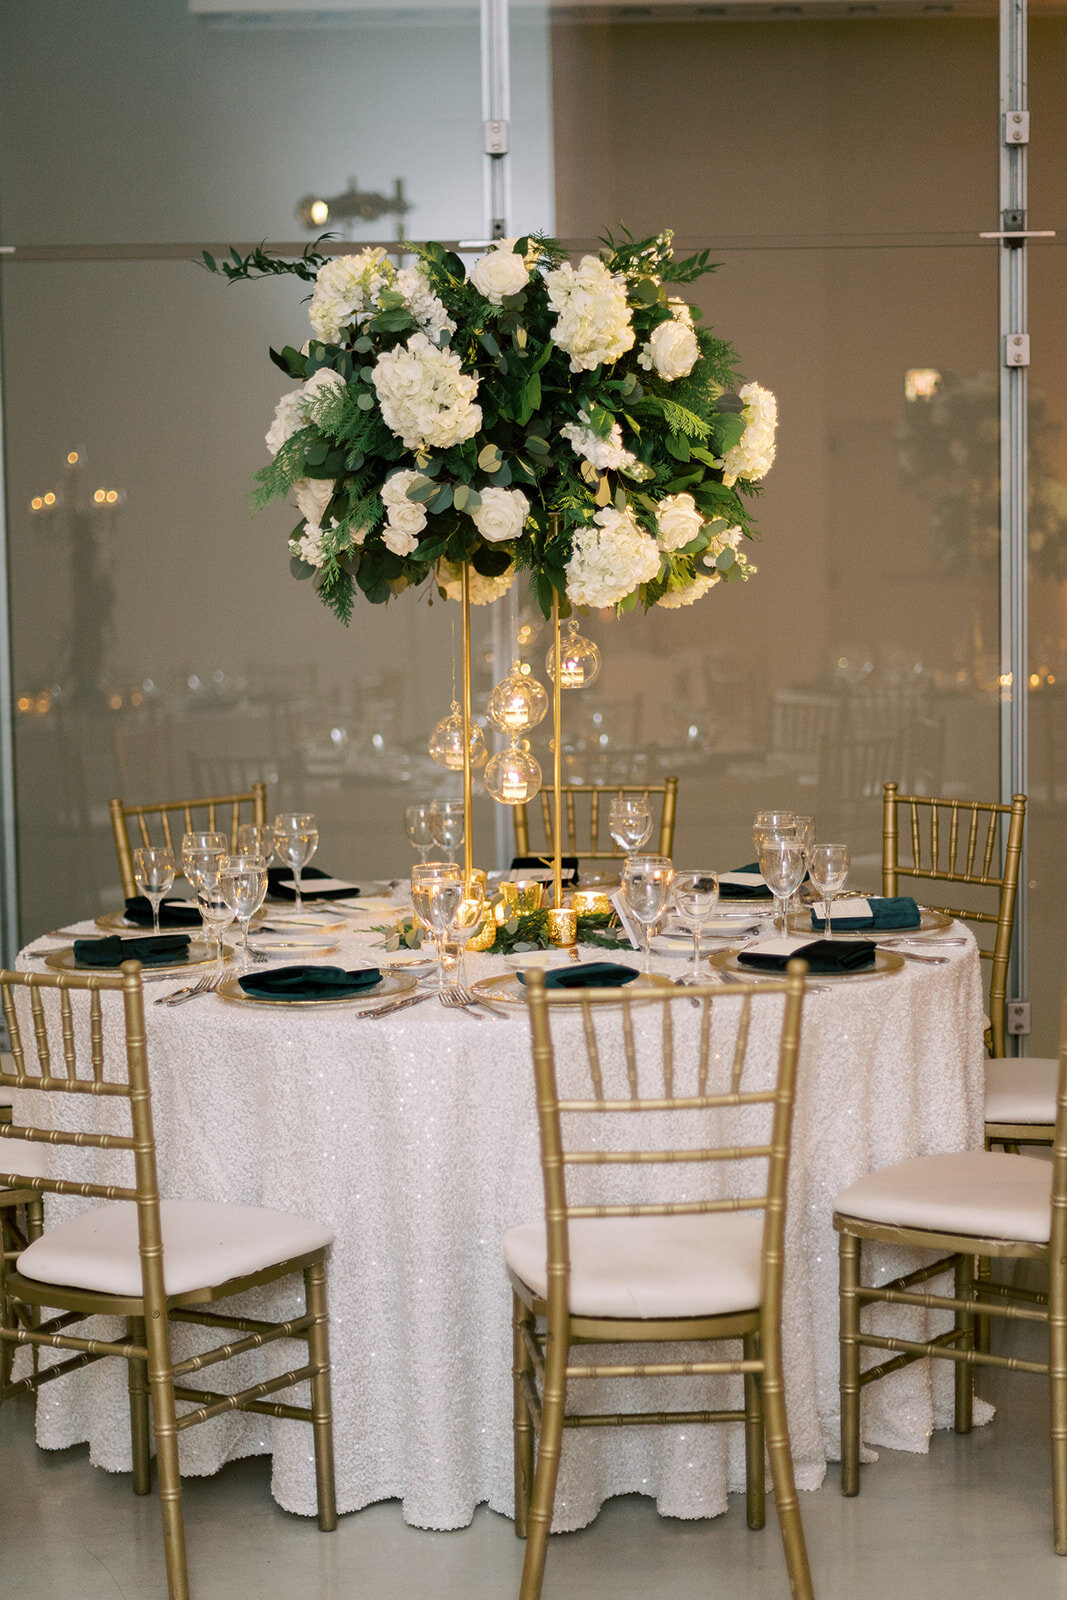 28-Venue-Six10-Wedding-centerpiece